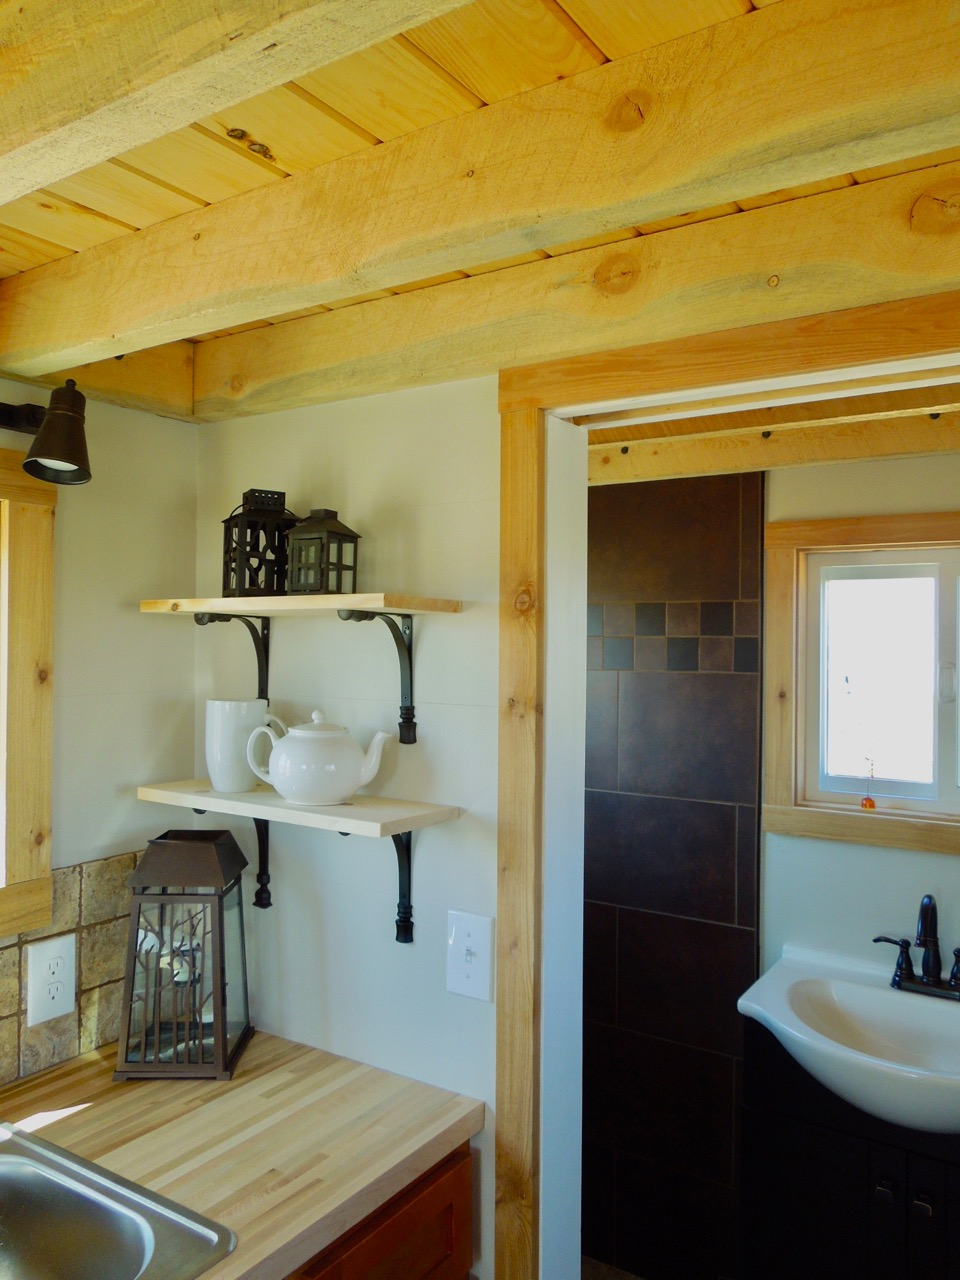 Wheelhouse-tiny-homes-2.jpg